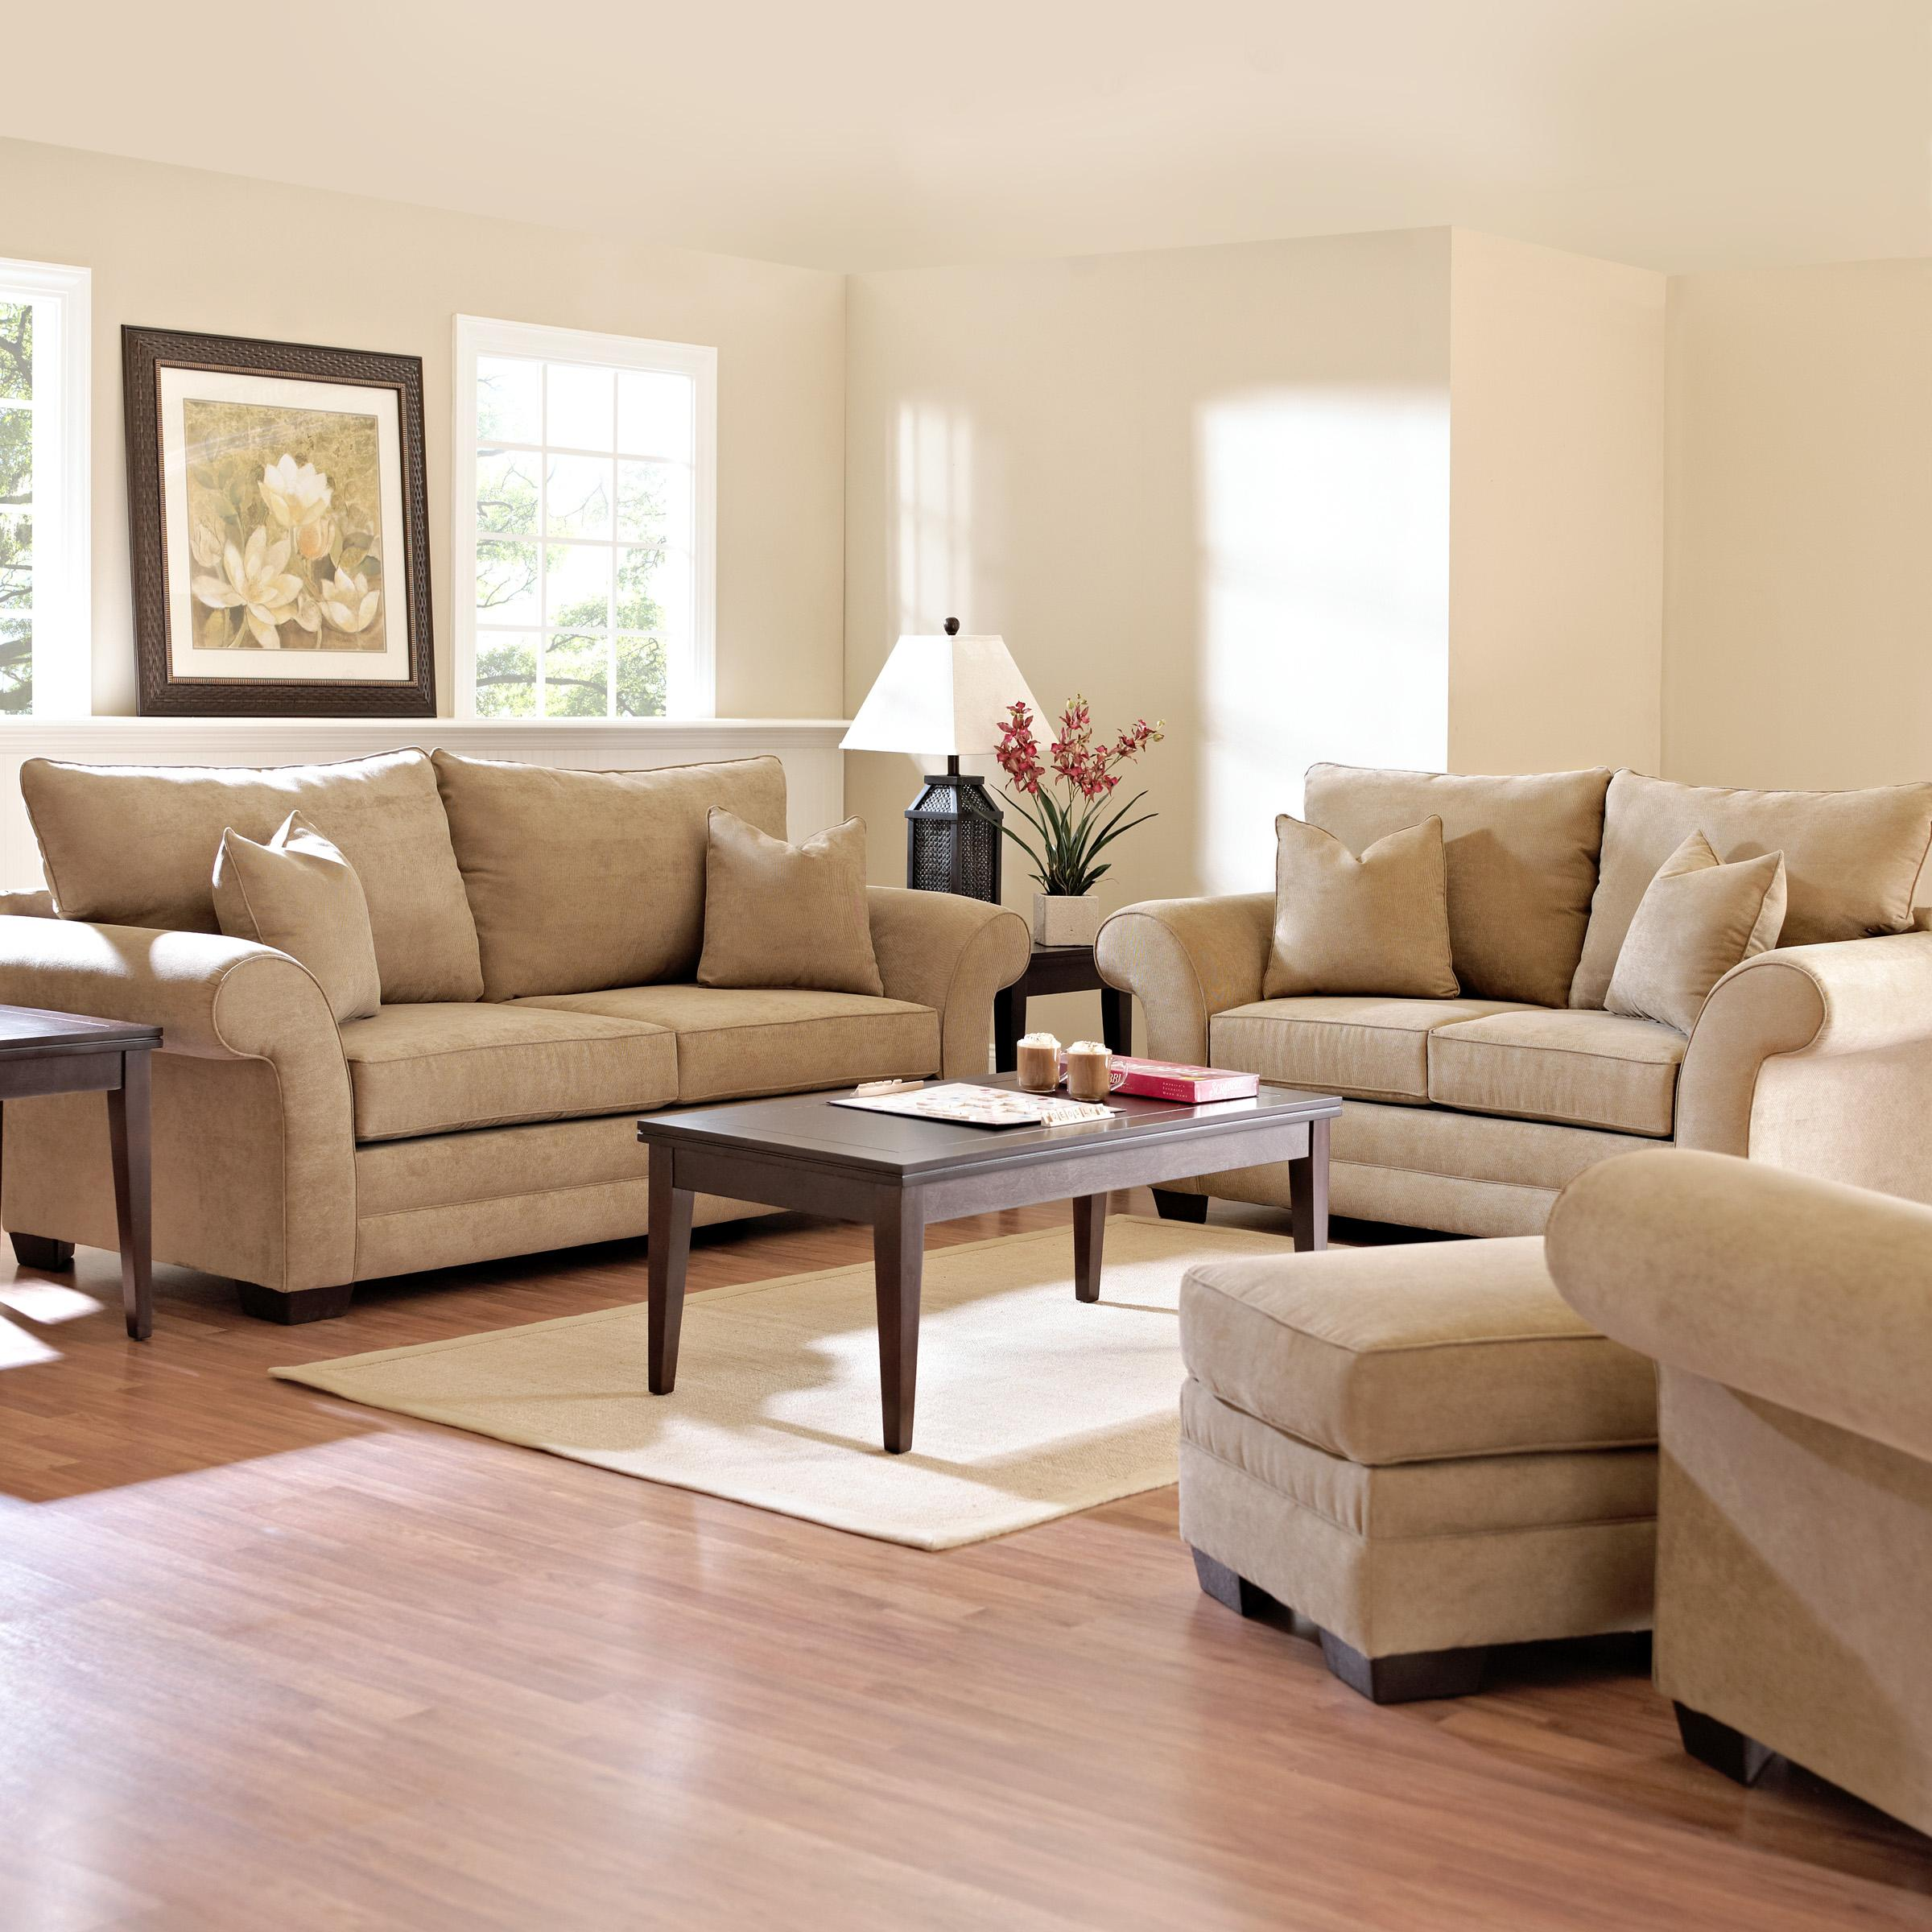 Klaussner Holly Stationary Living Room Group - Item Number: E769 Living Room Group 1